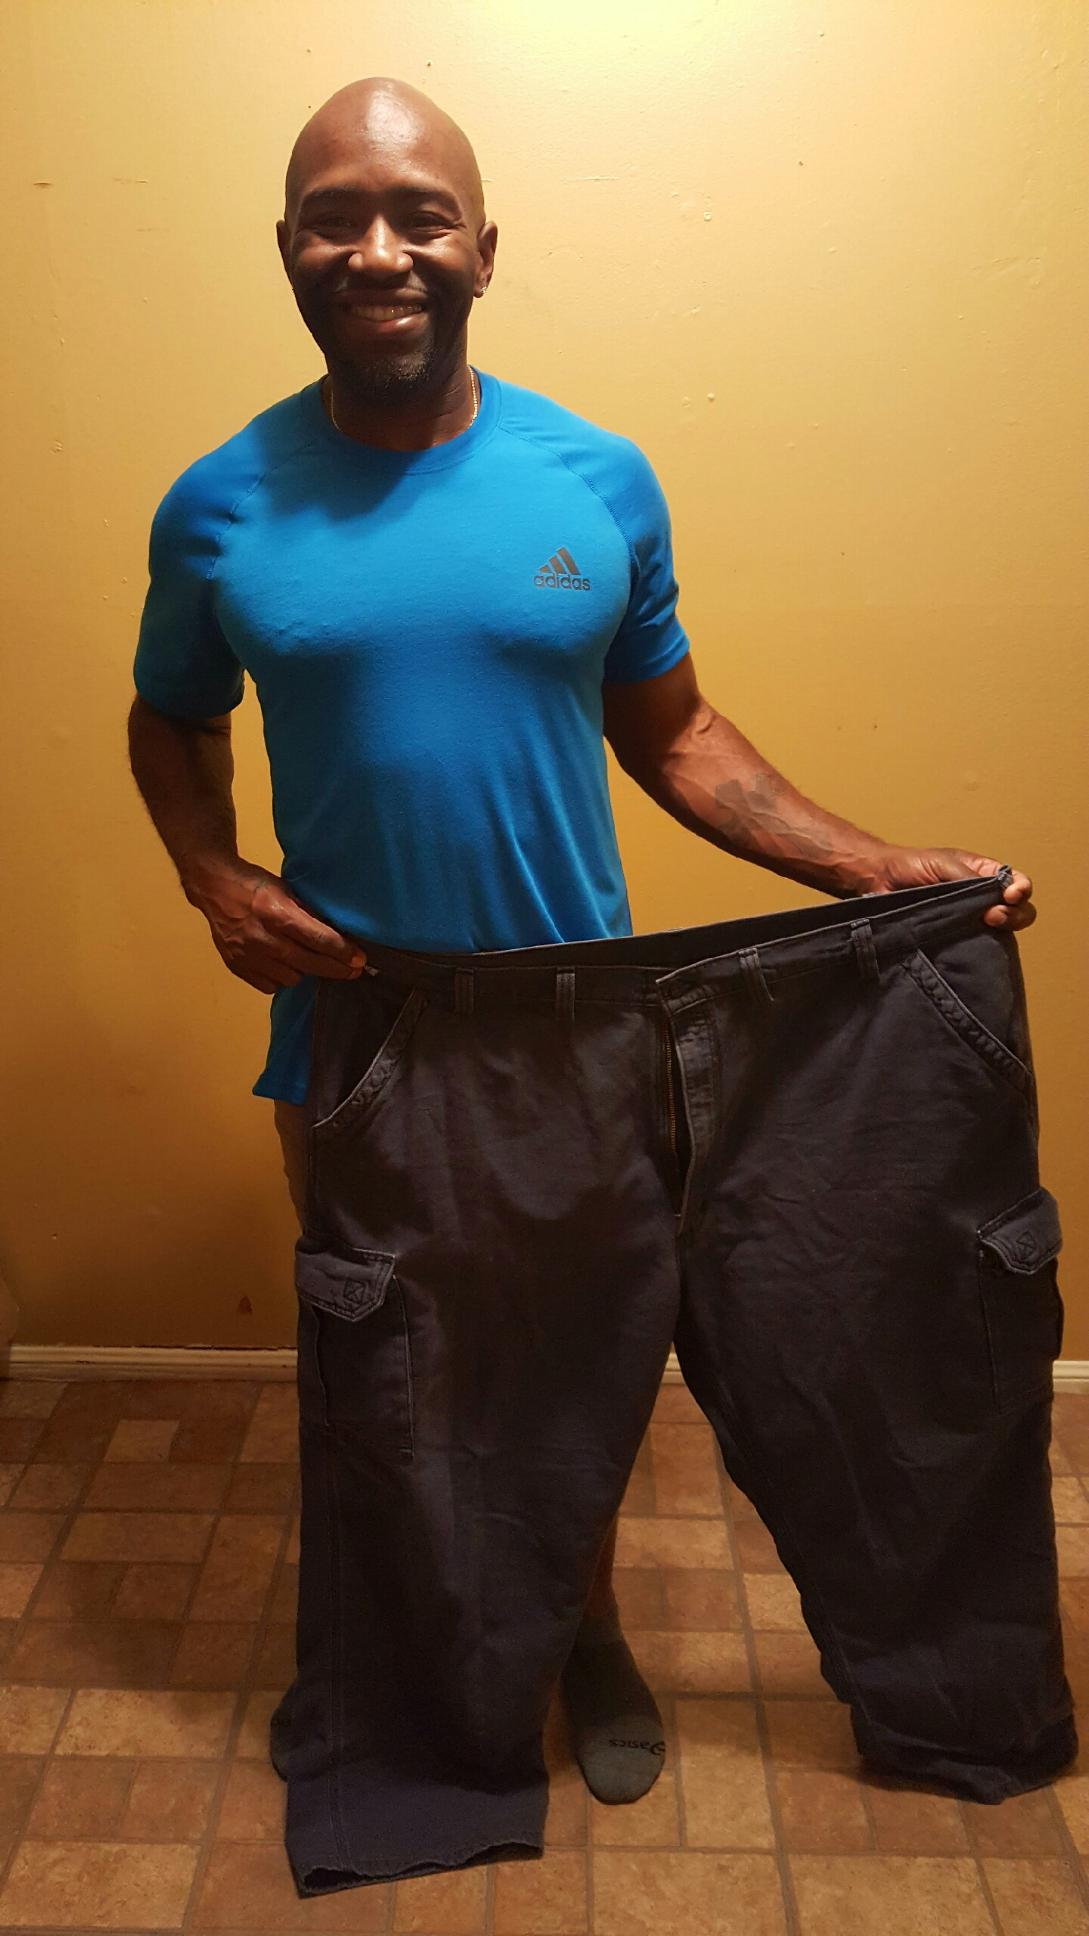 Pedro holds a pair of his old pants showing just how much weight he has lost.